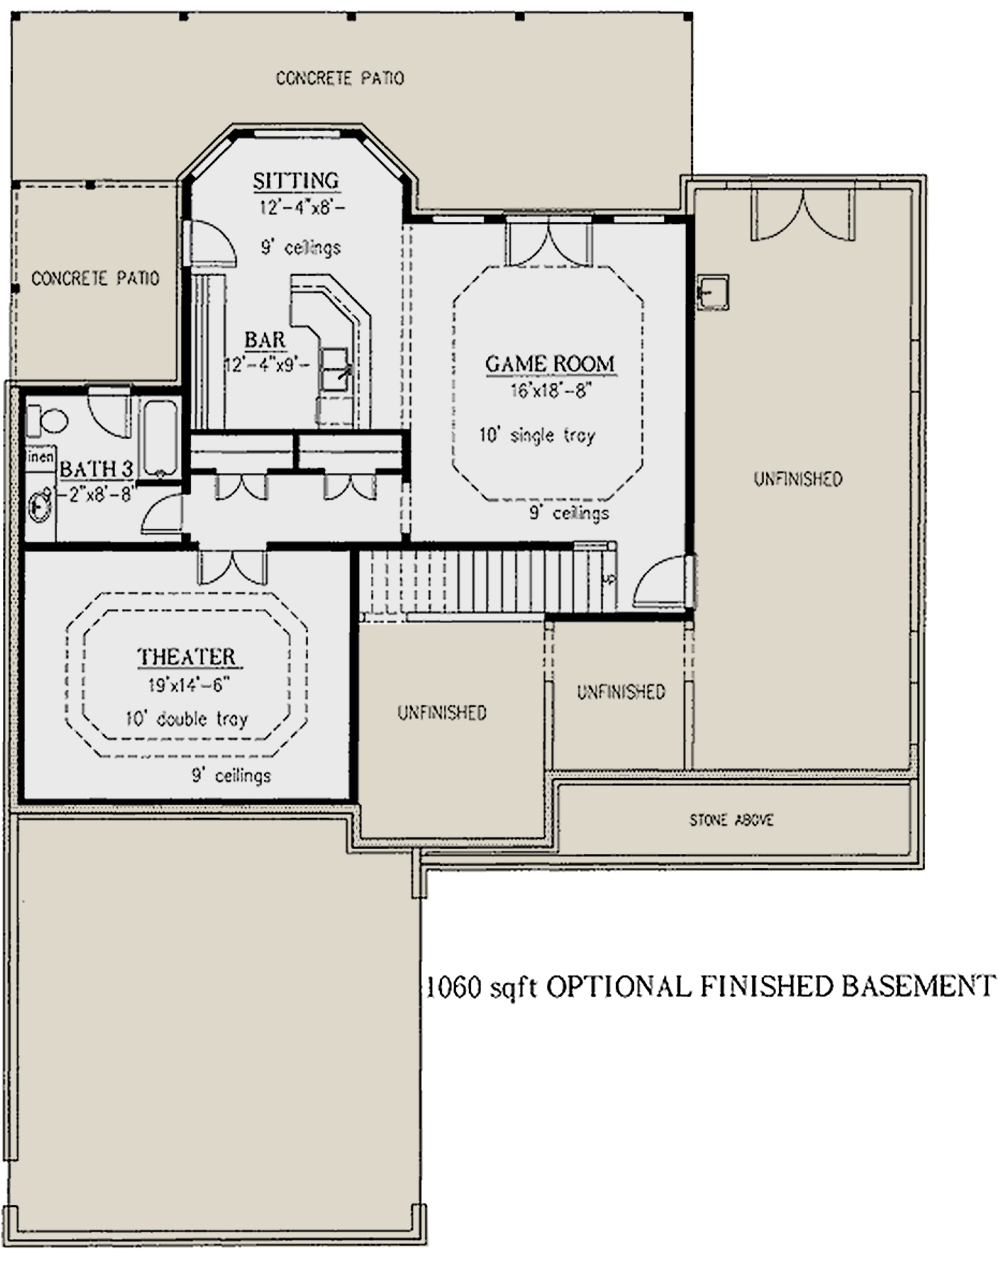 4 bedroom 2 bath house plans. photo  Basement Floor Plan Country 2 562 Square Feet 4 Bedrooms 5 Bathrooms 286 00024